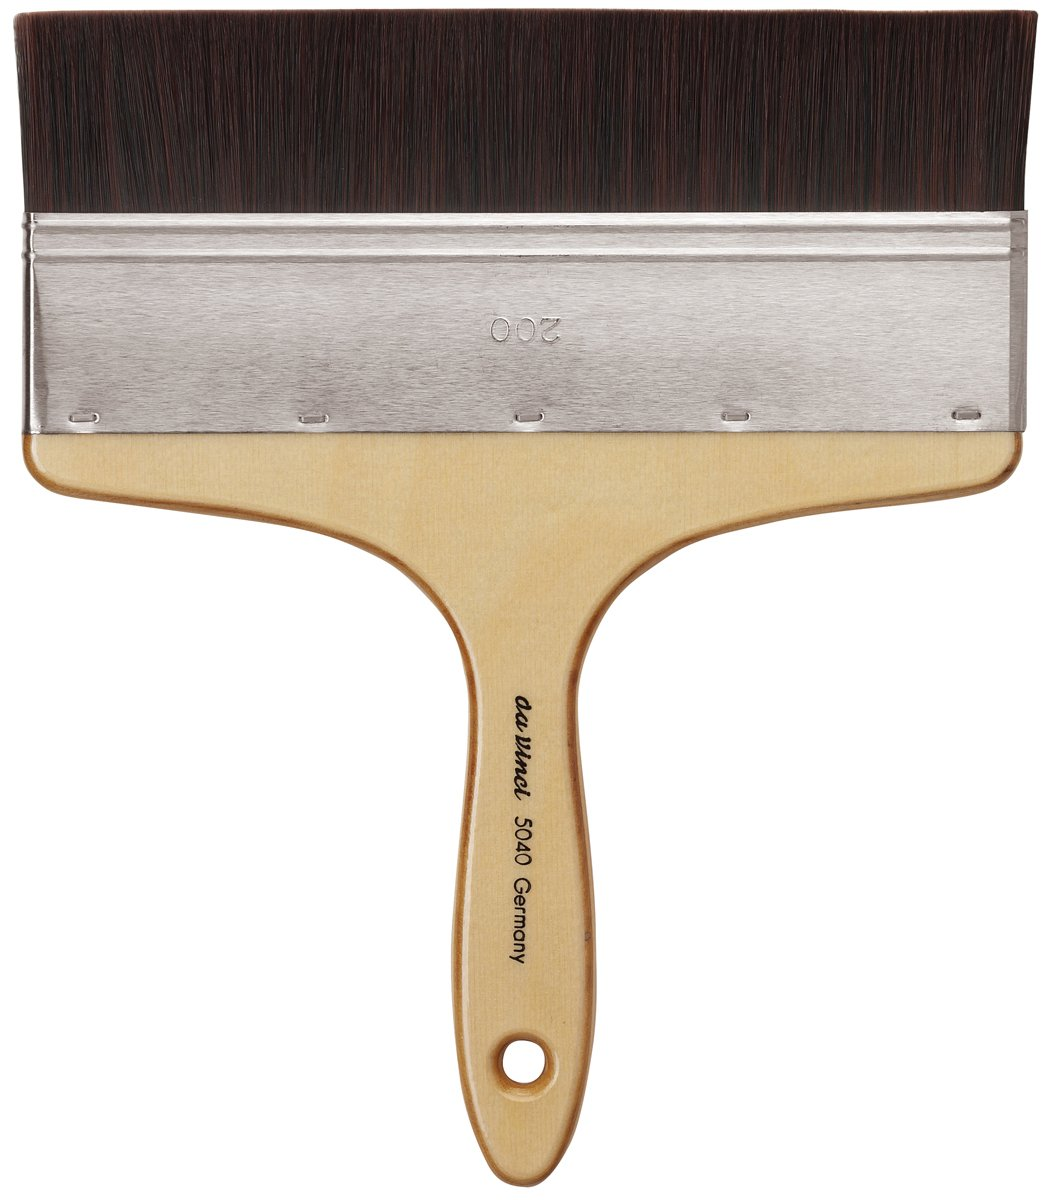 da Vinci Oil & Acrylic Series 5040 Top Acryl Paint Brush, Flat Mottler Red/Brown Synthetic with Plainwood Handle, Size 200